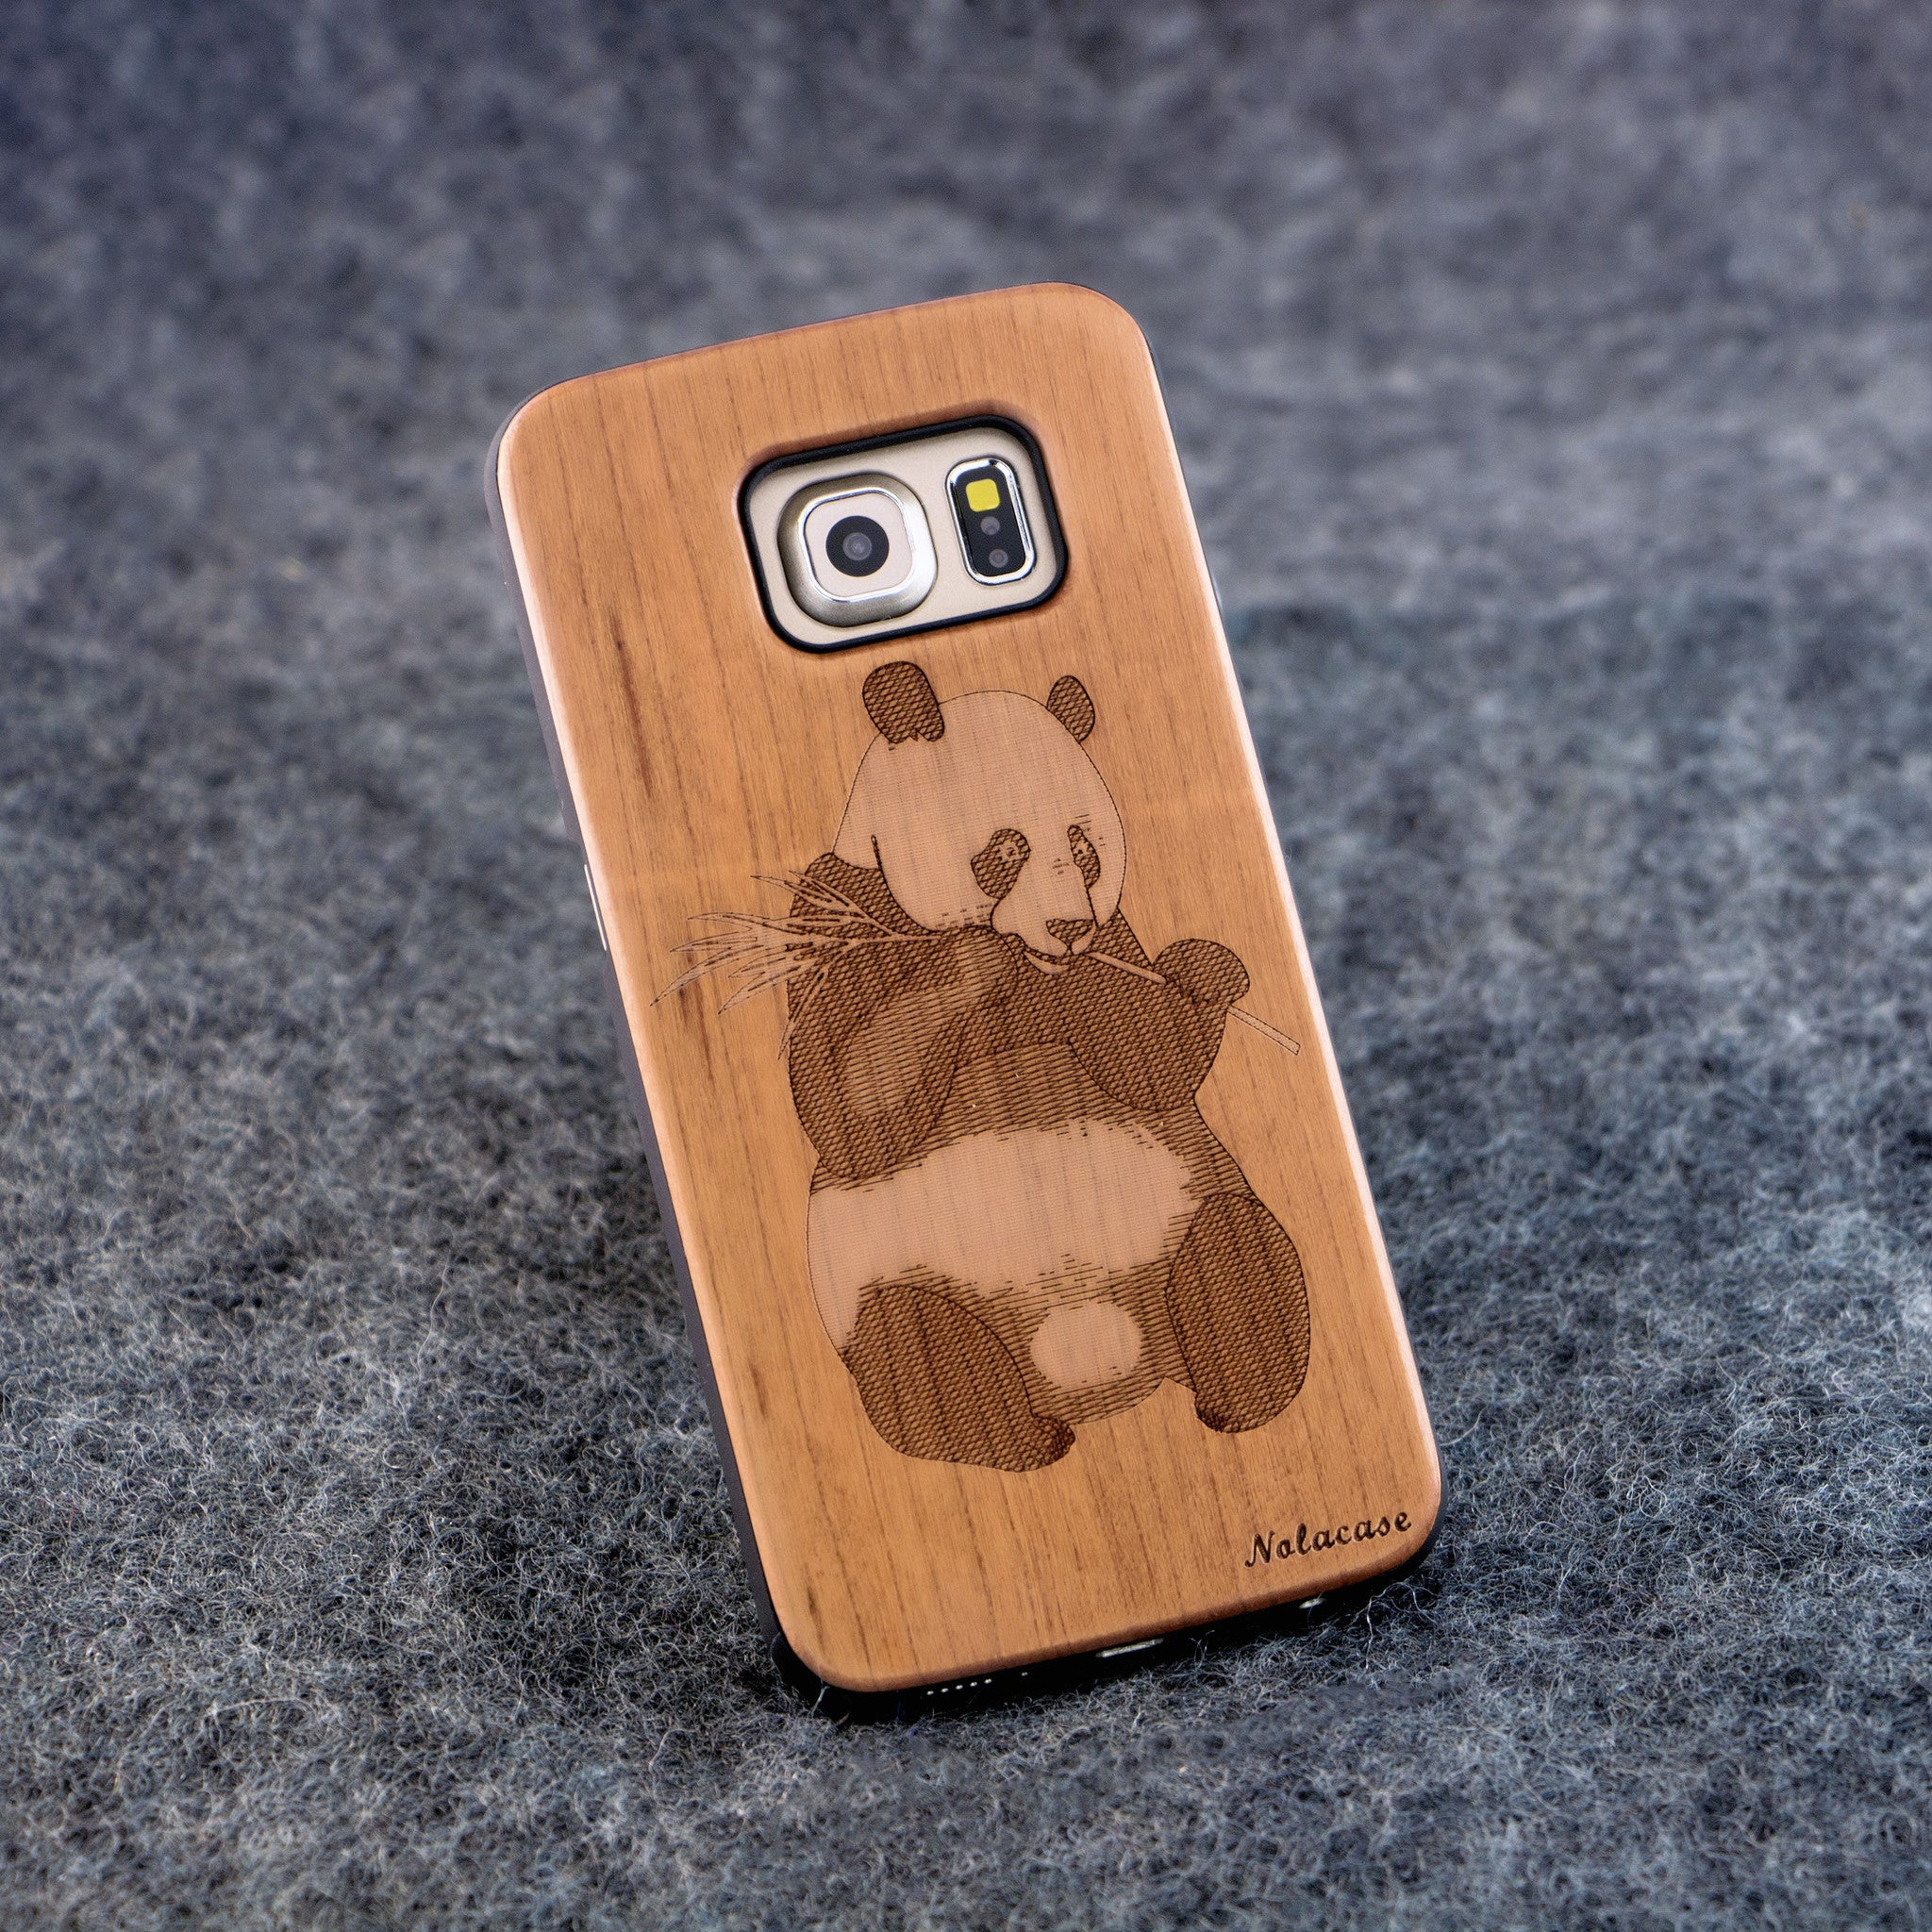 Samsung S6 Edge Panda Slim Wood Case - NOLACASE